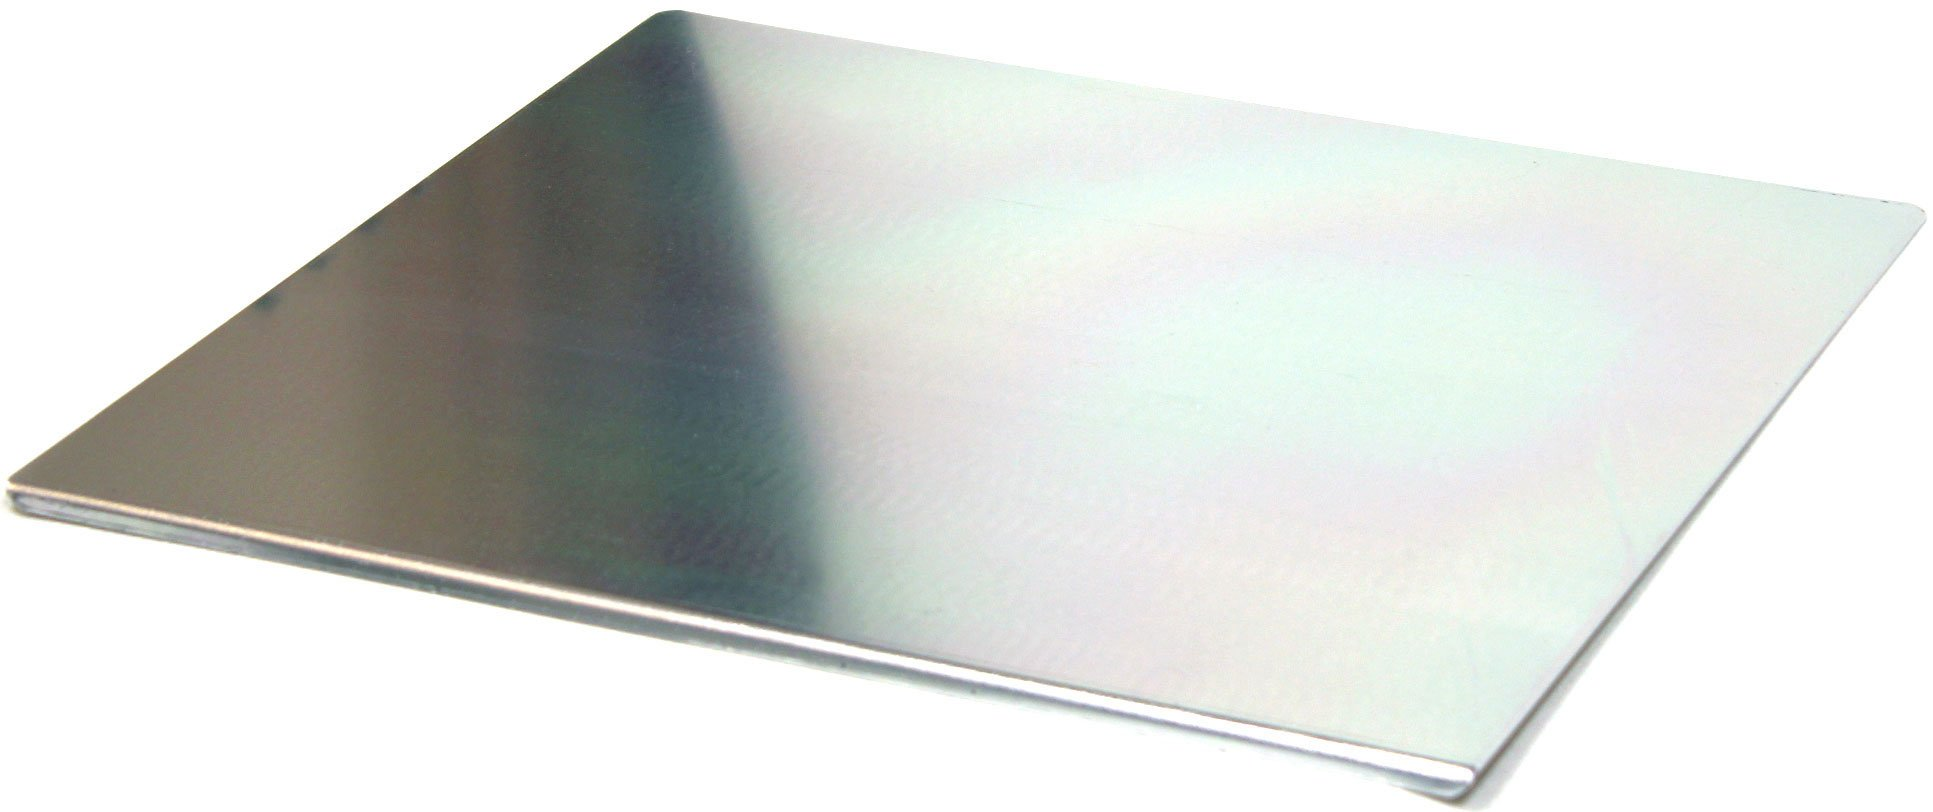 Across International SSA-19 Aluminum Shelf for AI AccuTemp, 1.9 cu.ft. Series Vacuum Ovens